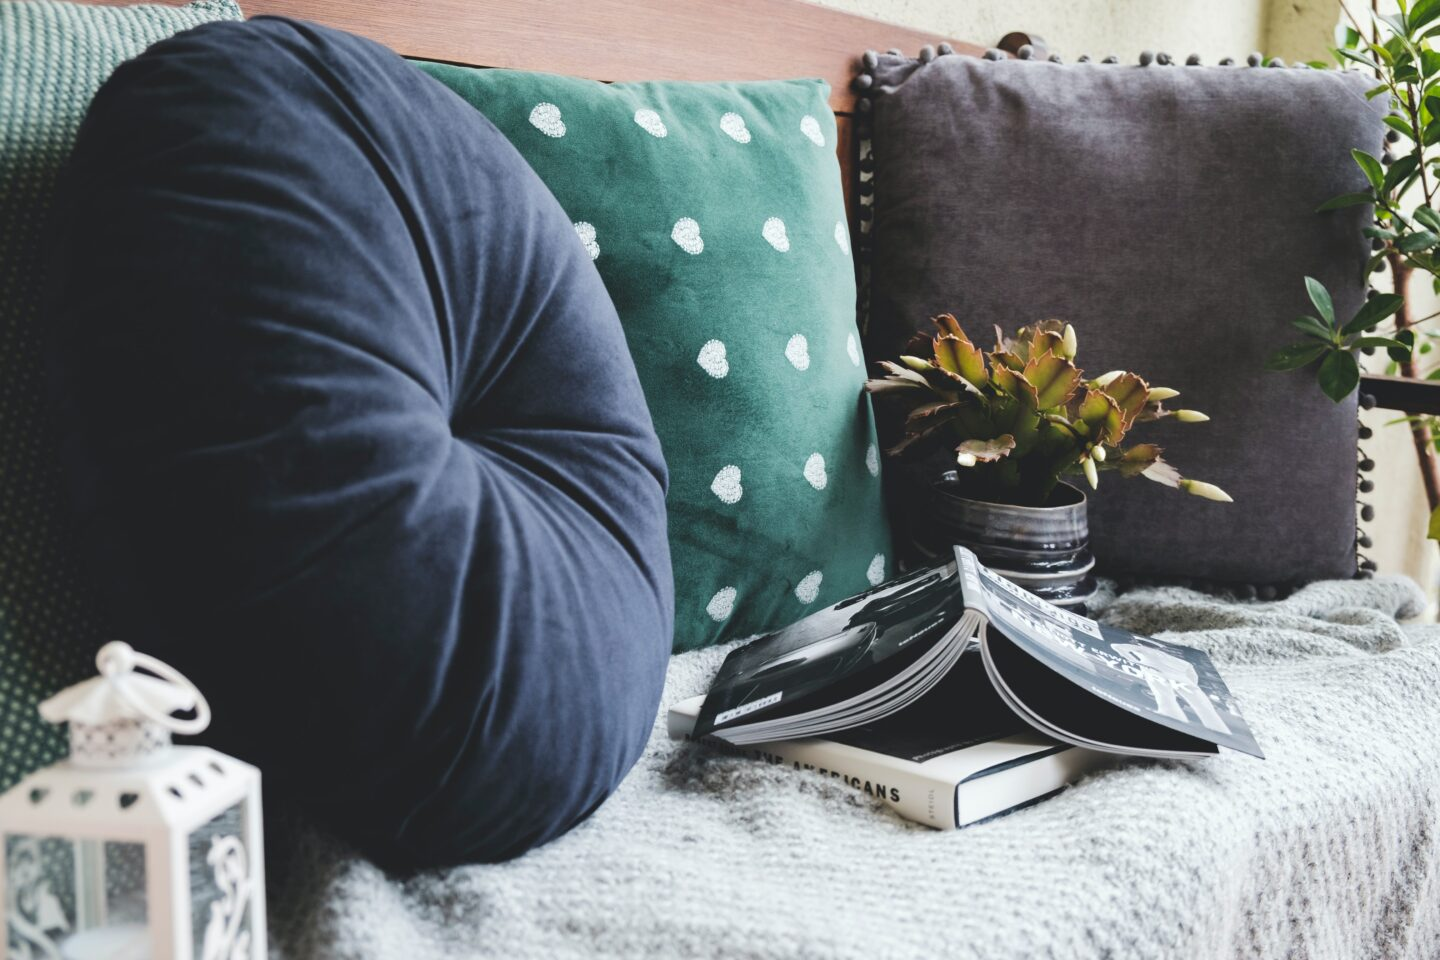 7 Top Tips to Upgrade Your Living Room This Autumn